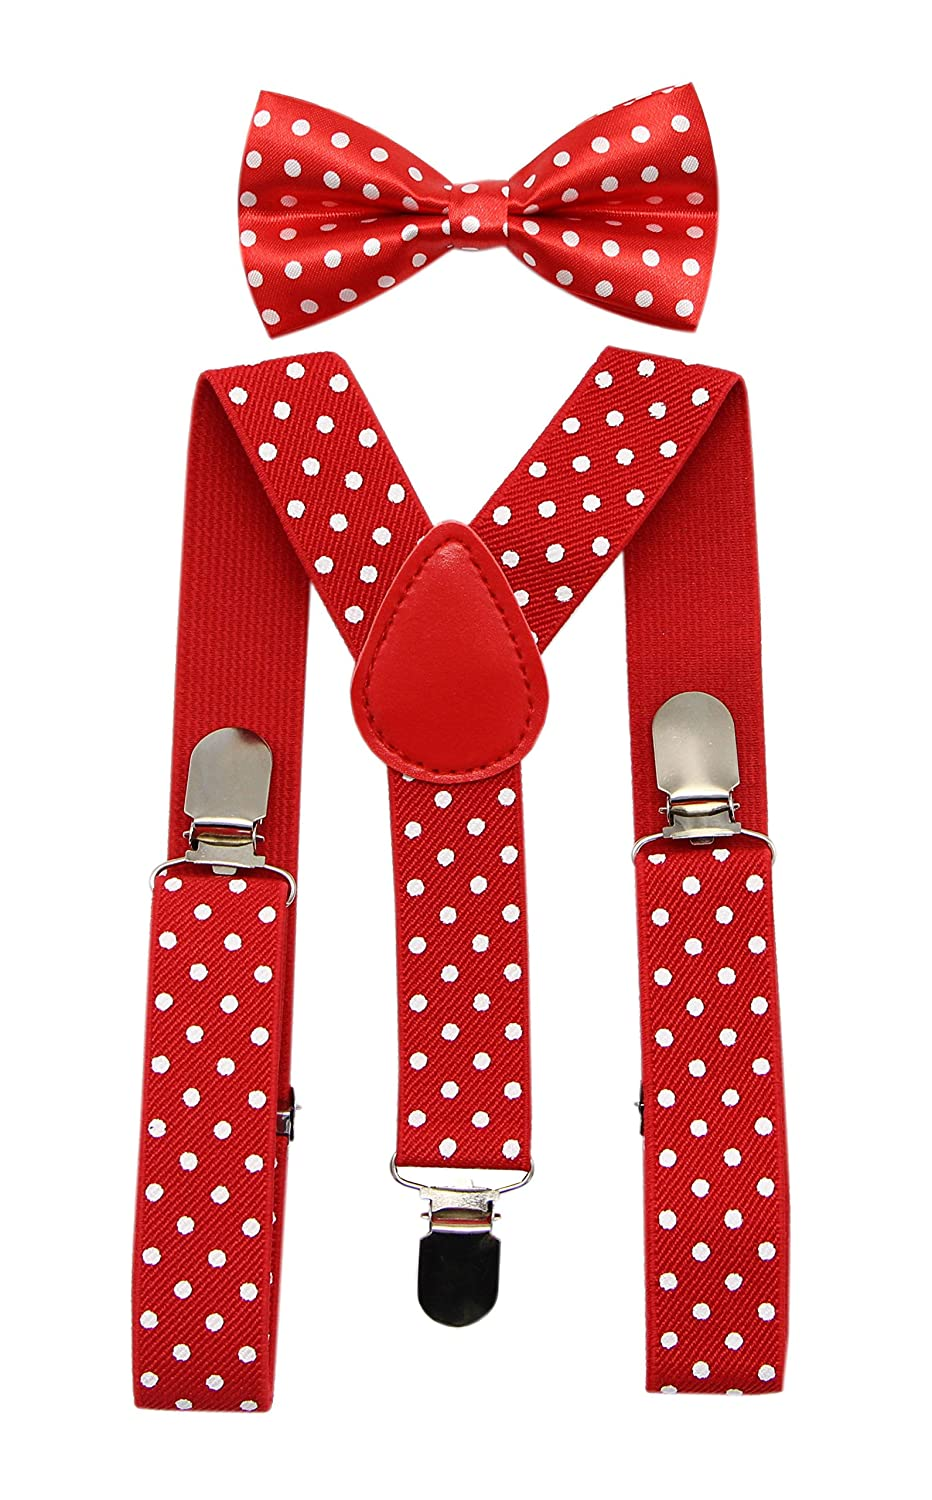 JAIFEI Suspender& Bow Tie Set-Adjustable Strong Clip-on Suspender for Boys& Girls (Beige) Boys Suspender 2 Set Beige CA